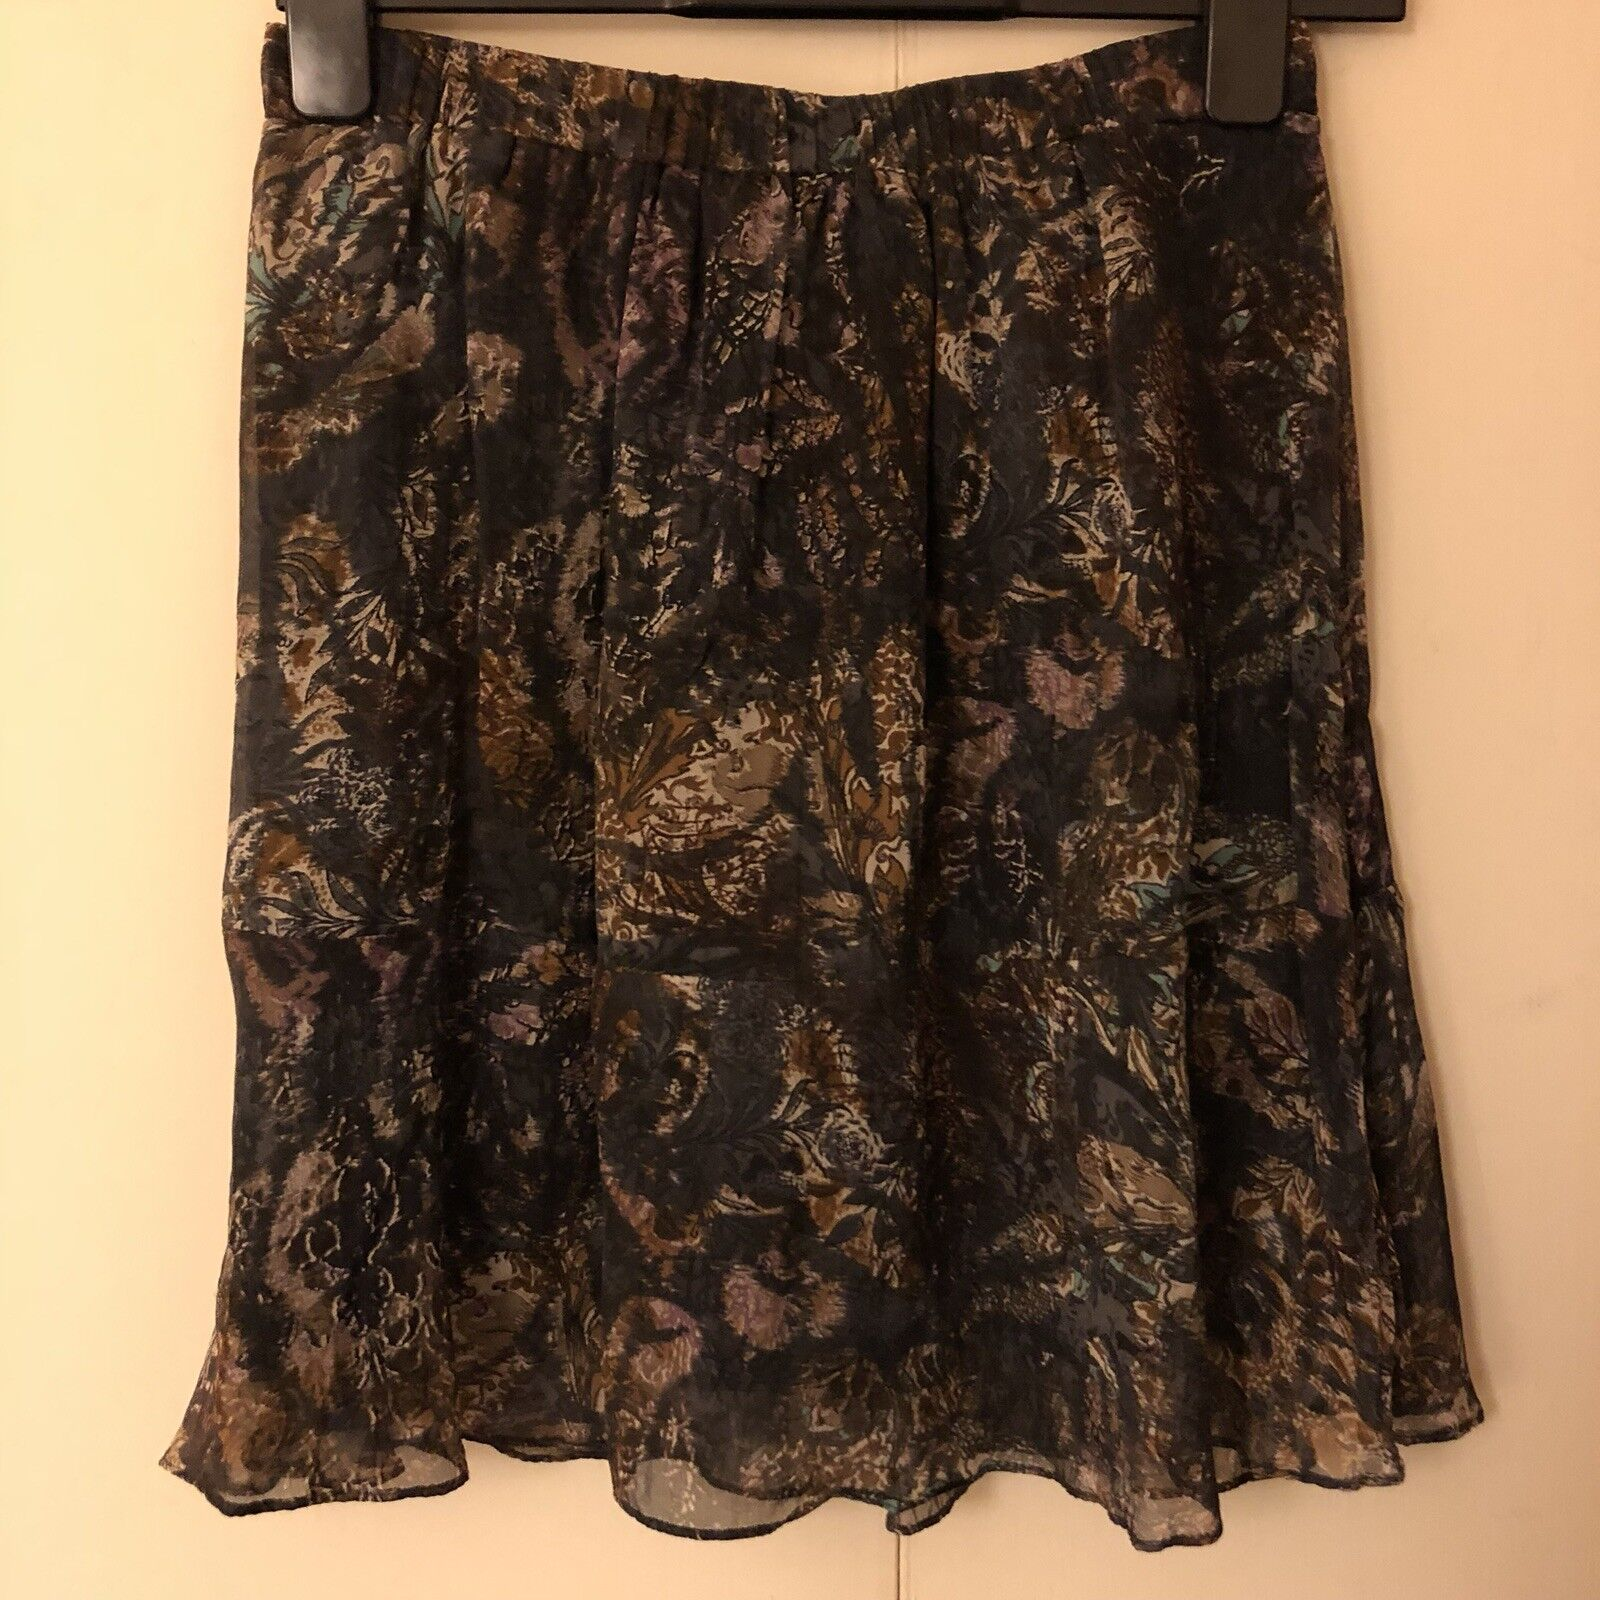 Brora Silk Skirt. Size 10. Used a handful of times